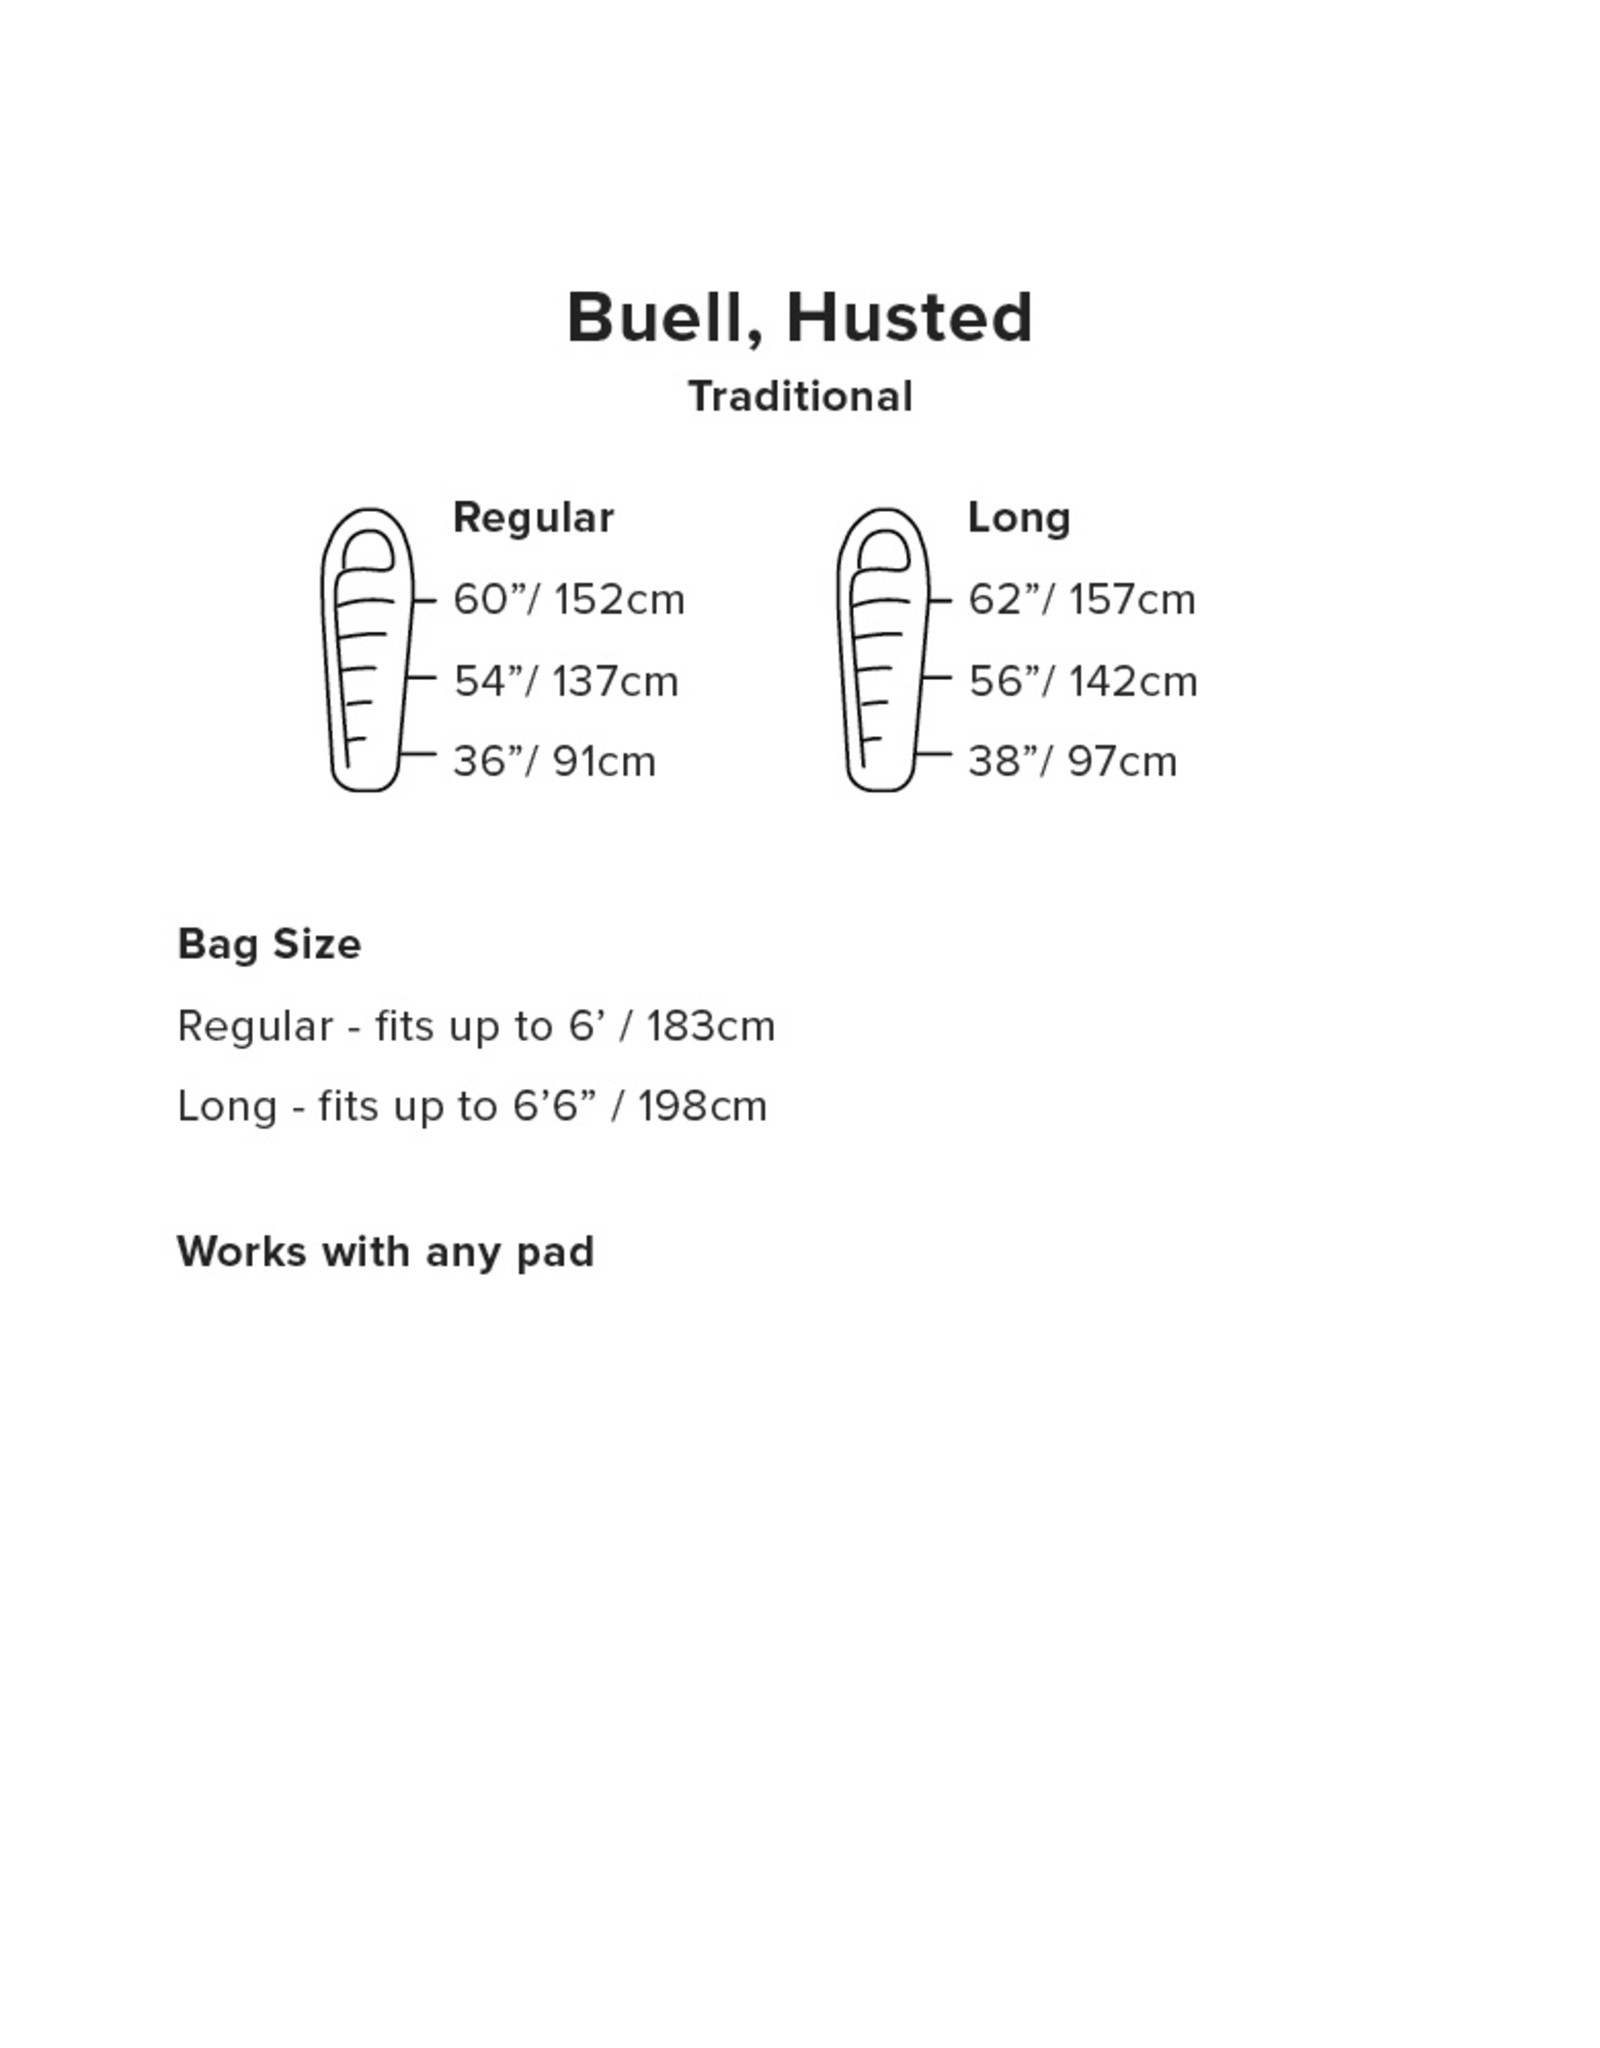 Big Agnes Buell 30 (FireLine Pro) LONG LEFT